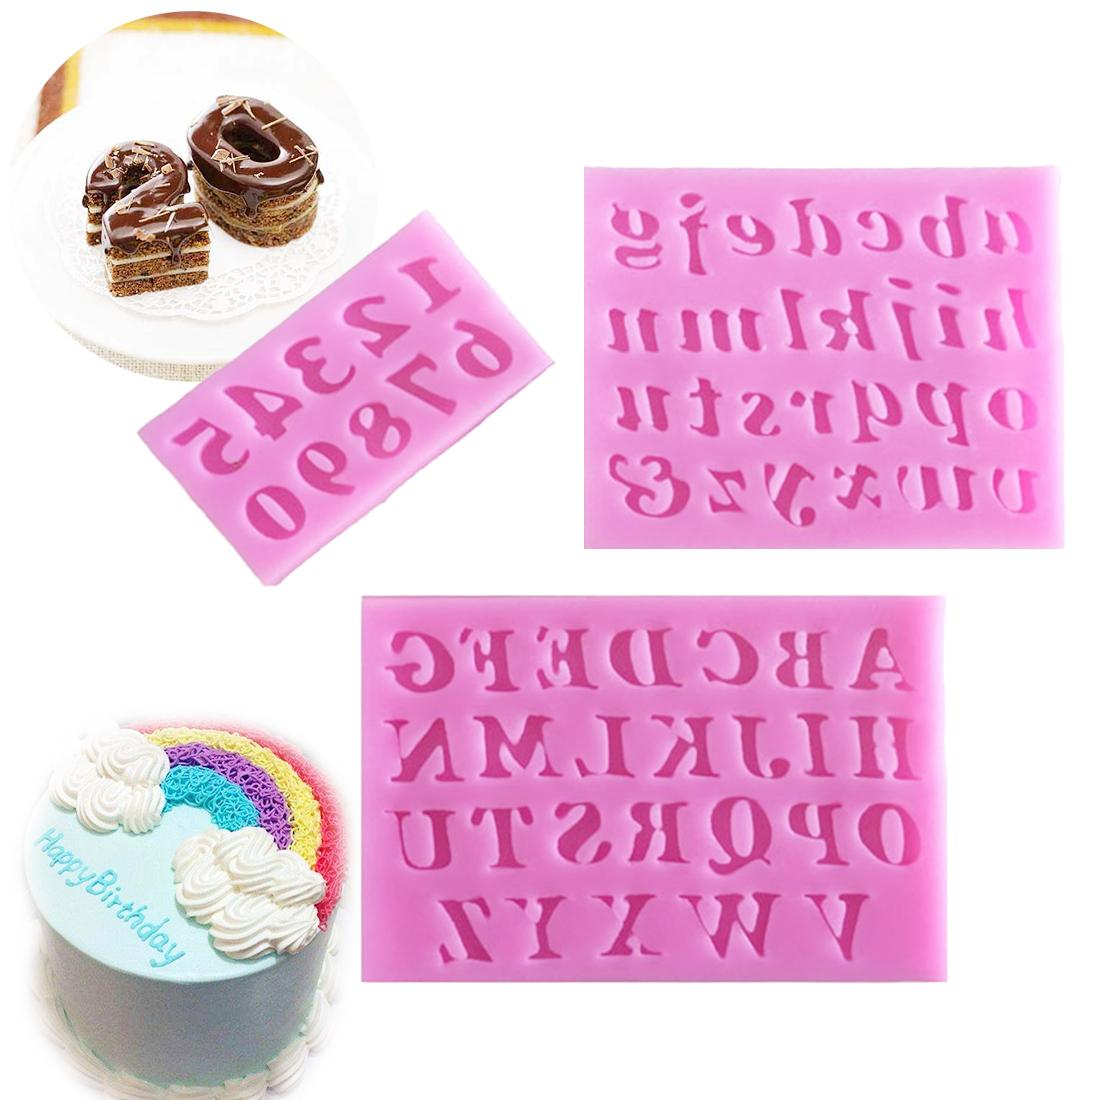 ... Baking Tools & Accessories. 3pcs/set Mini Letter&Number Silicone Handmade Fondant Cake Decorating DIY Mould Mold - intl